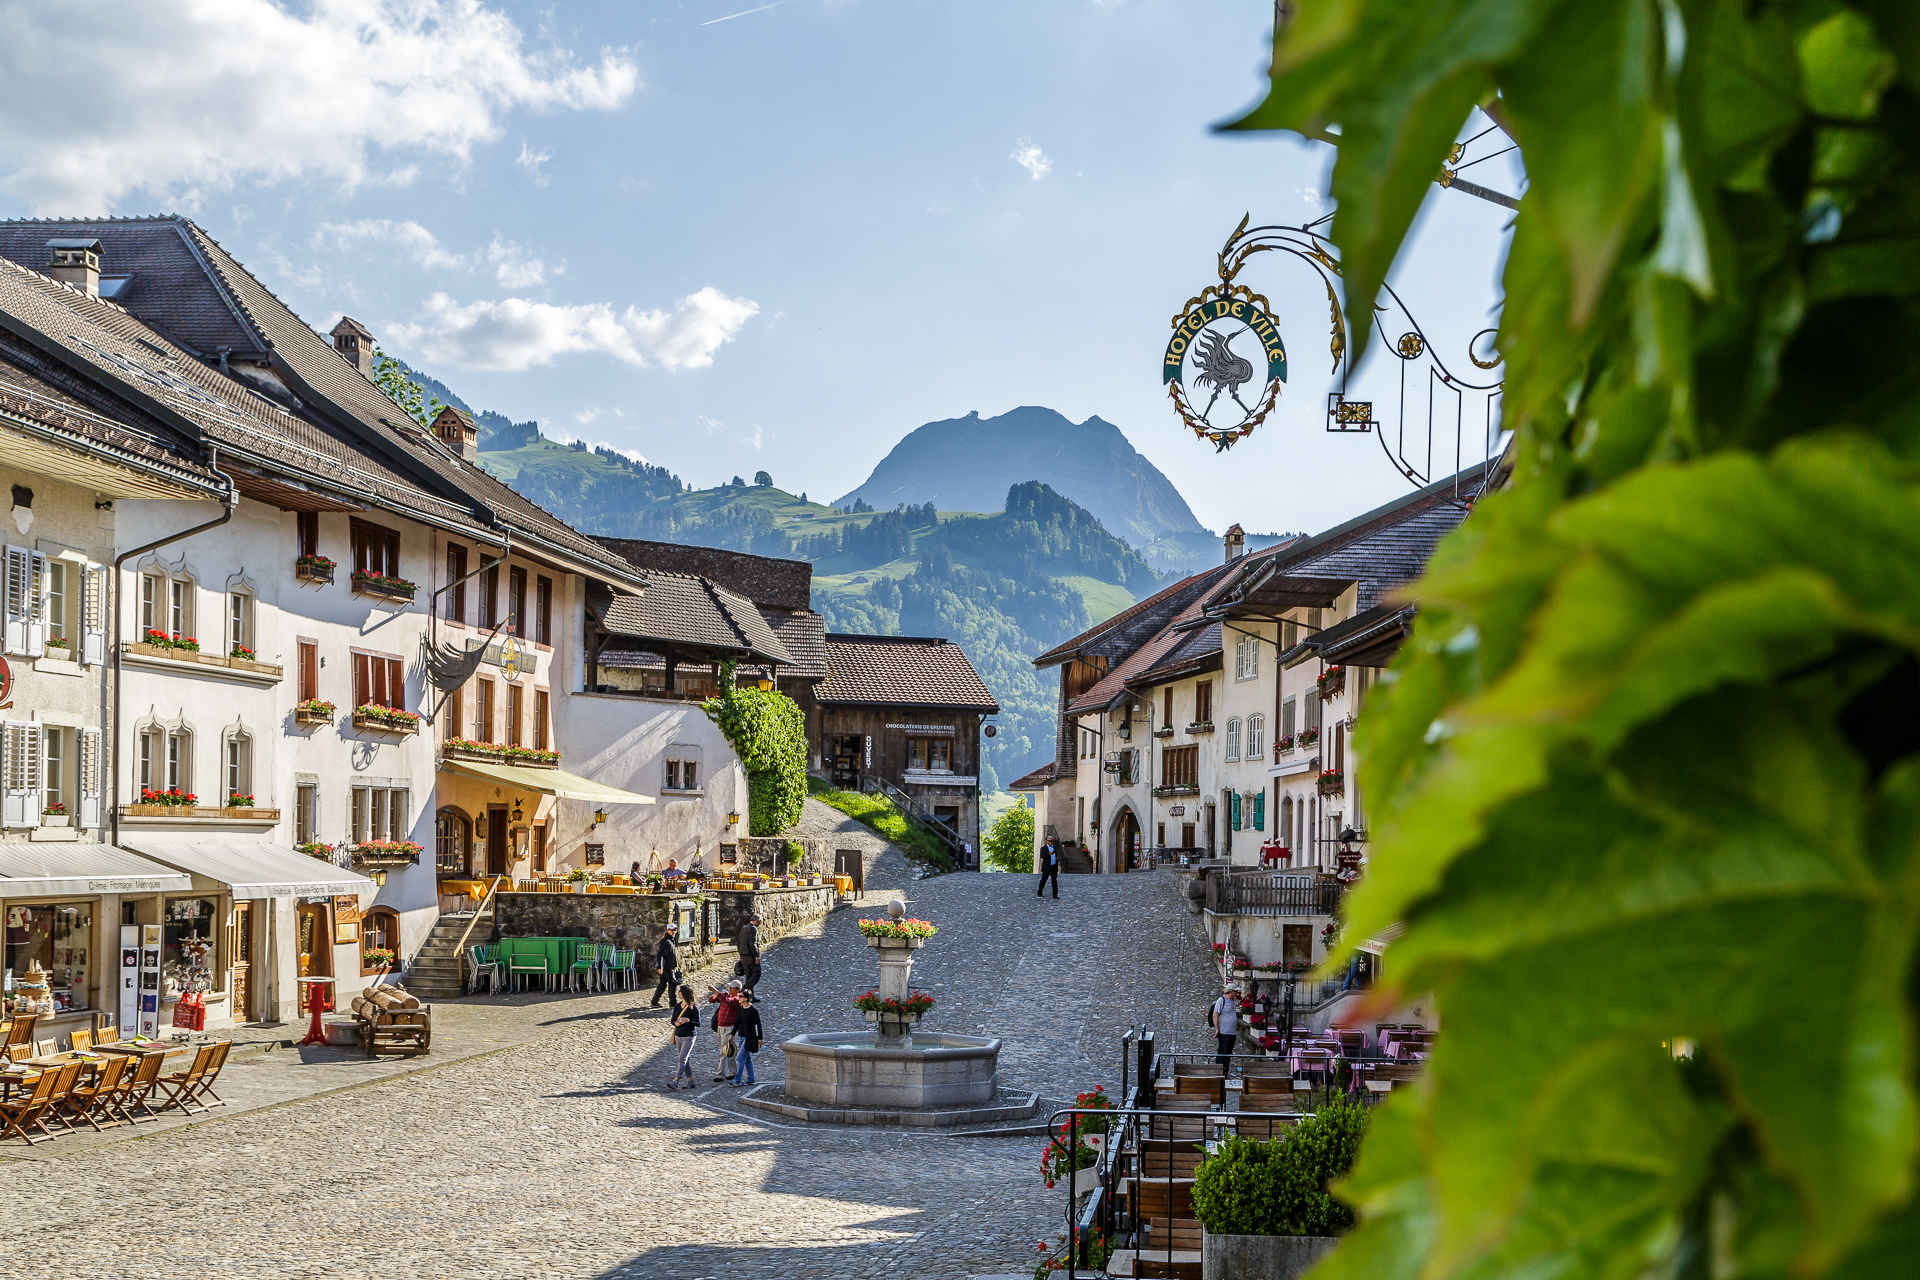 Gruyères-Fribourg